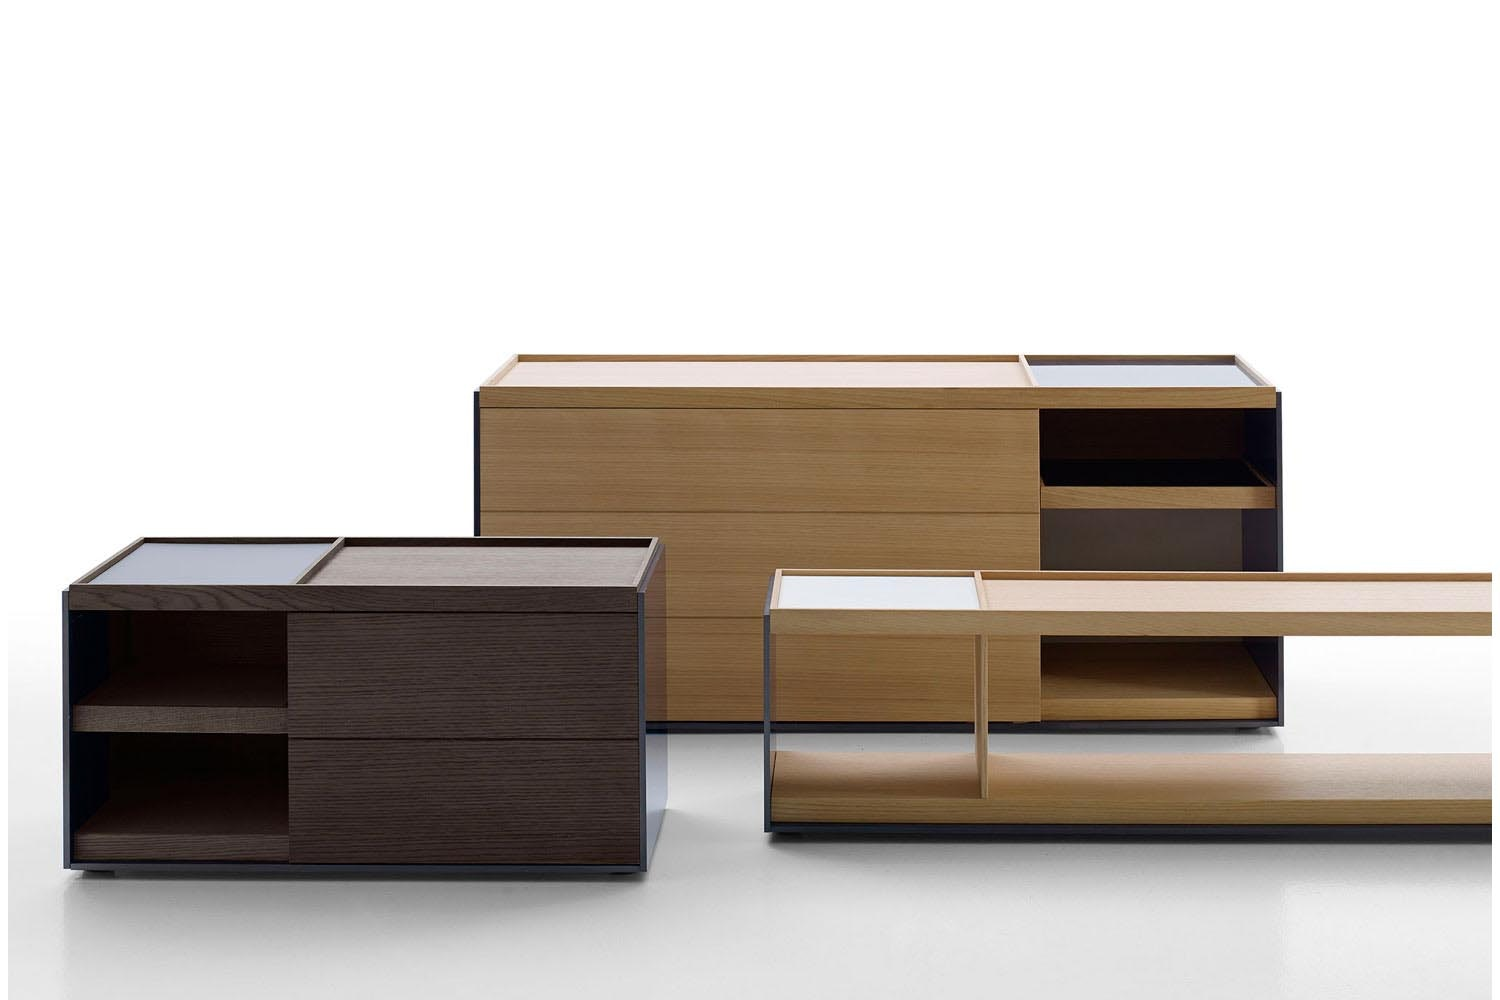 Surface Storage Unit by Vincent Van Duysen for B&B Italia